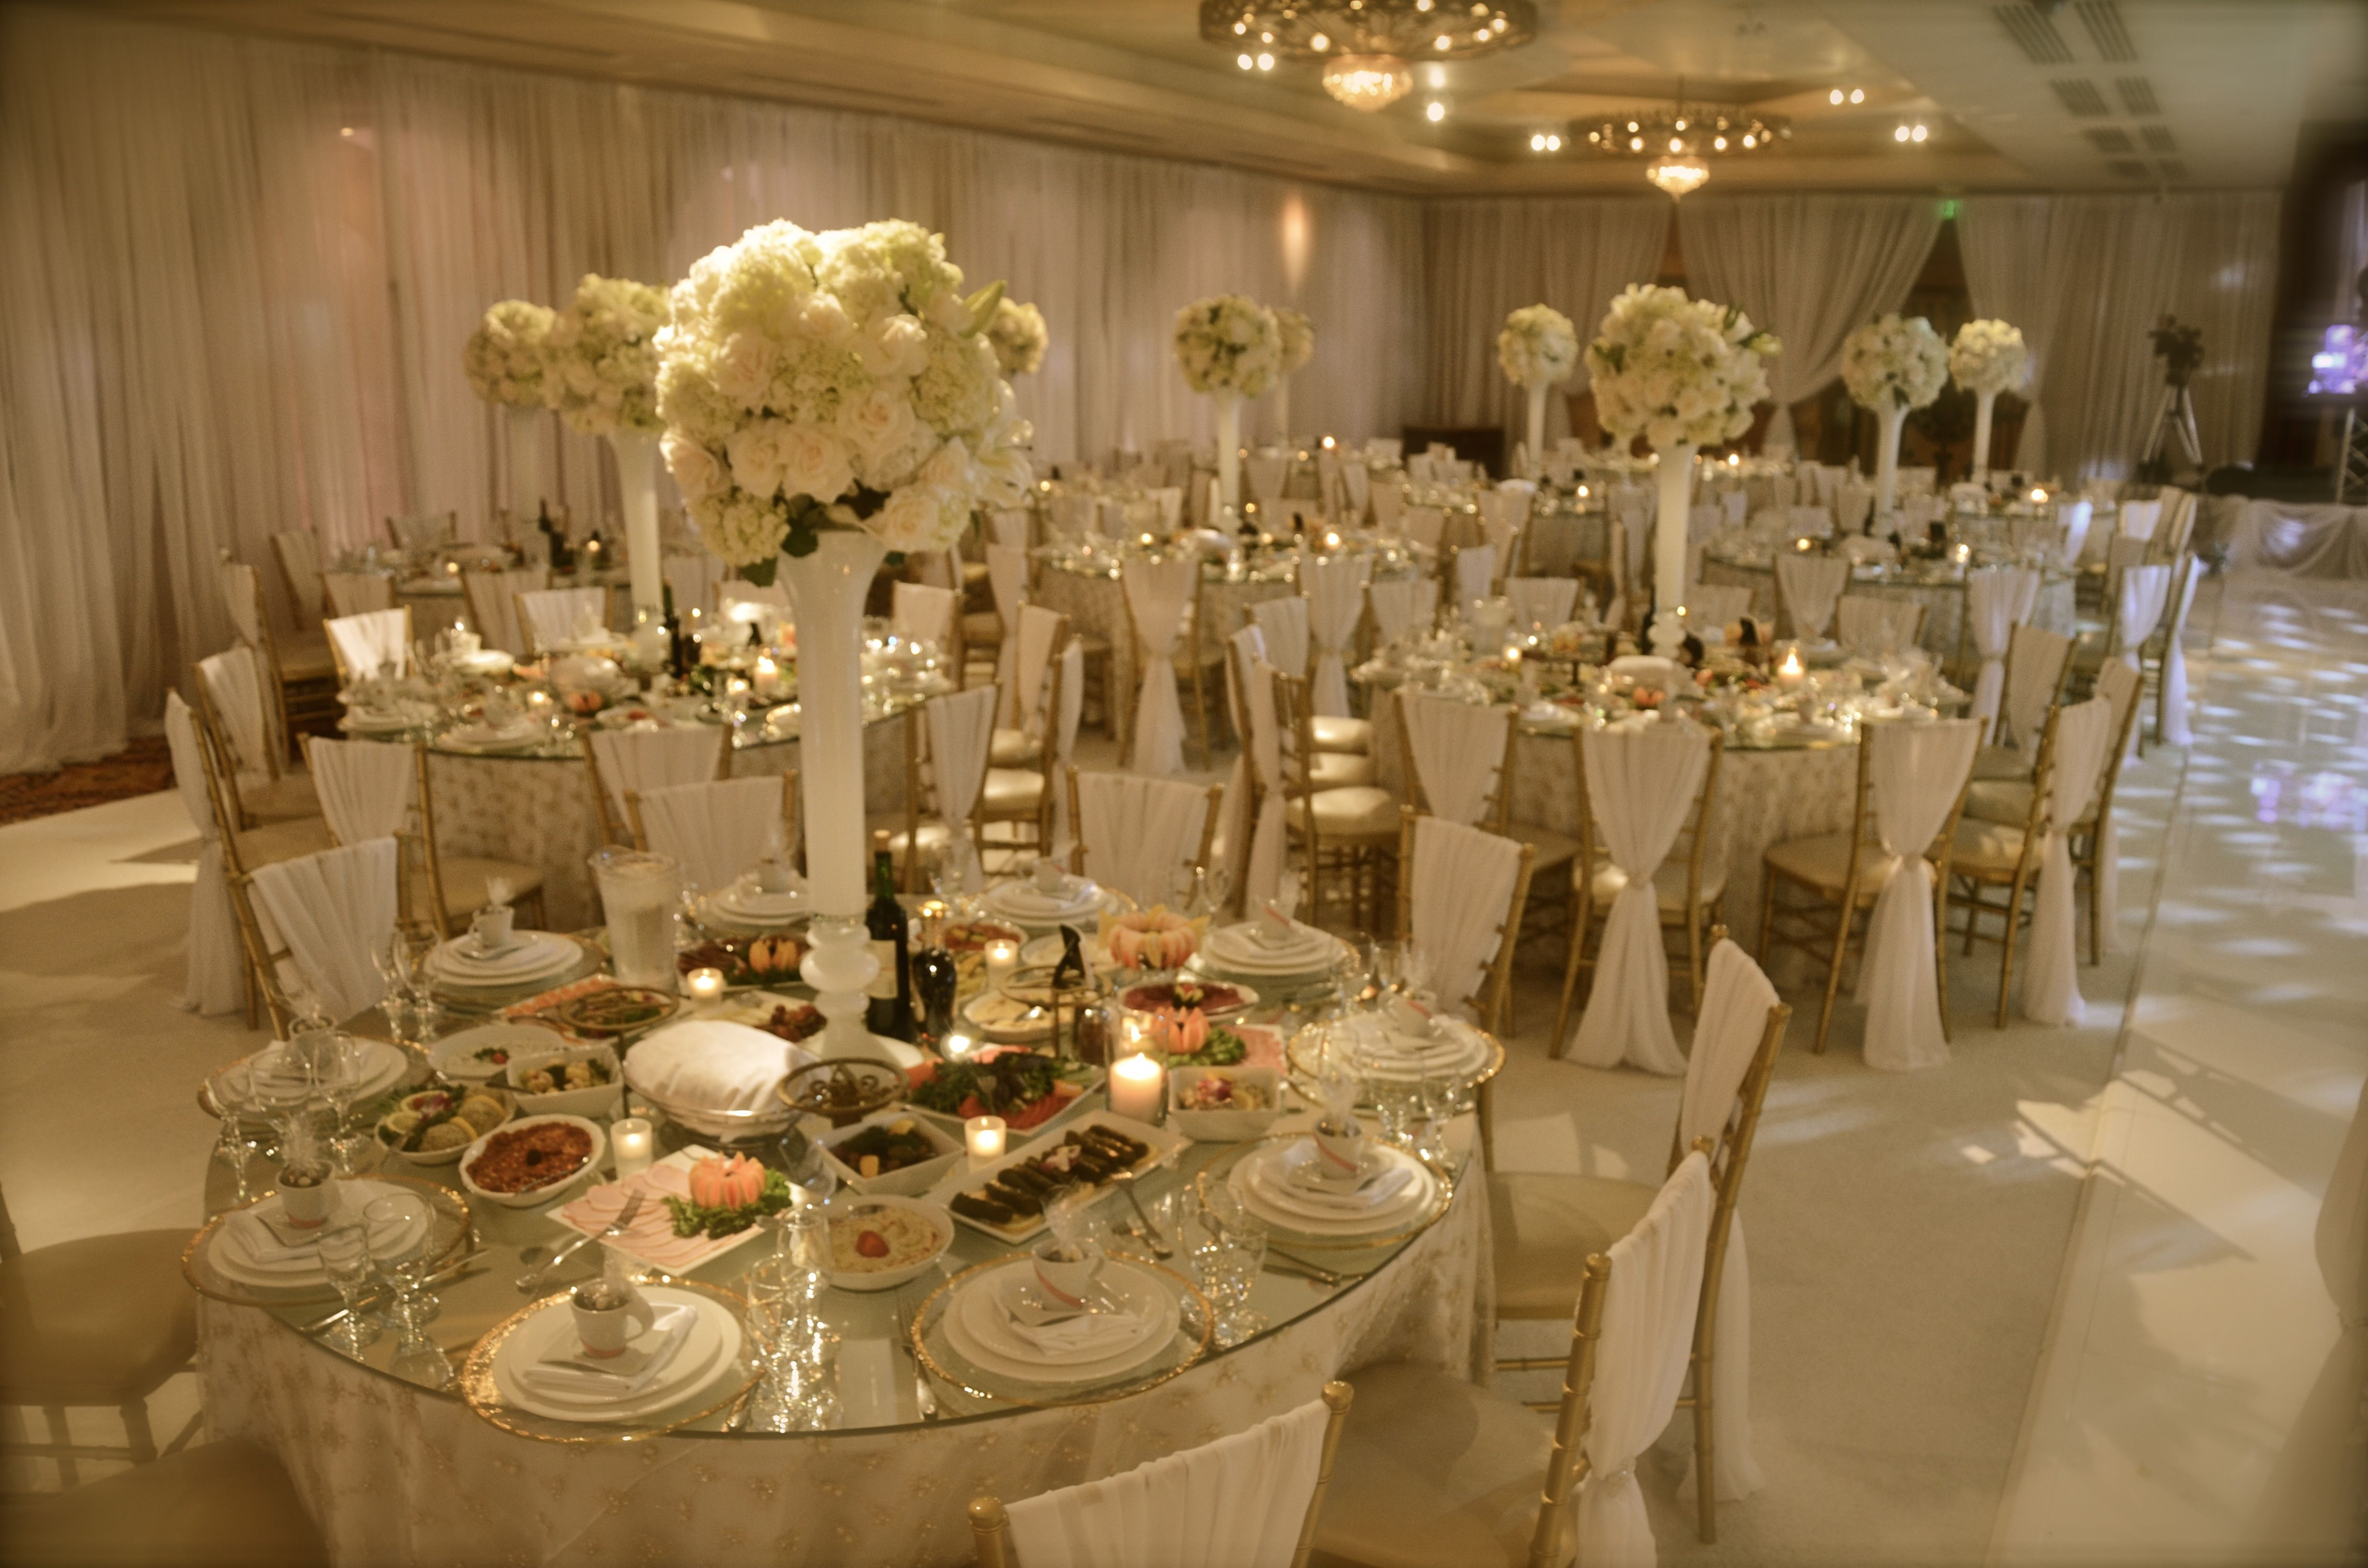 Fancy chair rentals - All White Wedding With Gold Accents Draped Chiavari Chairs Tall Elegant Floral Centerpieces